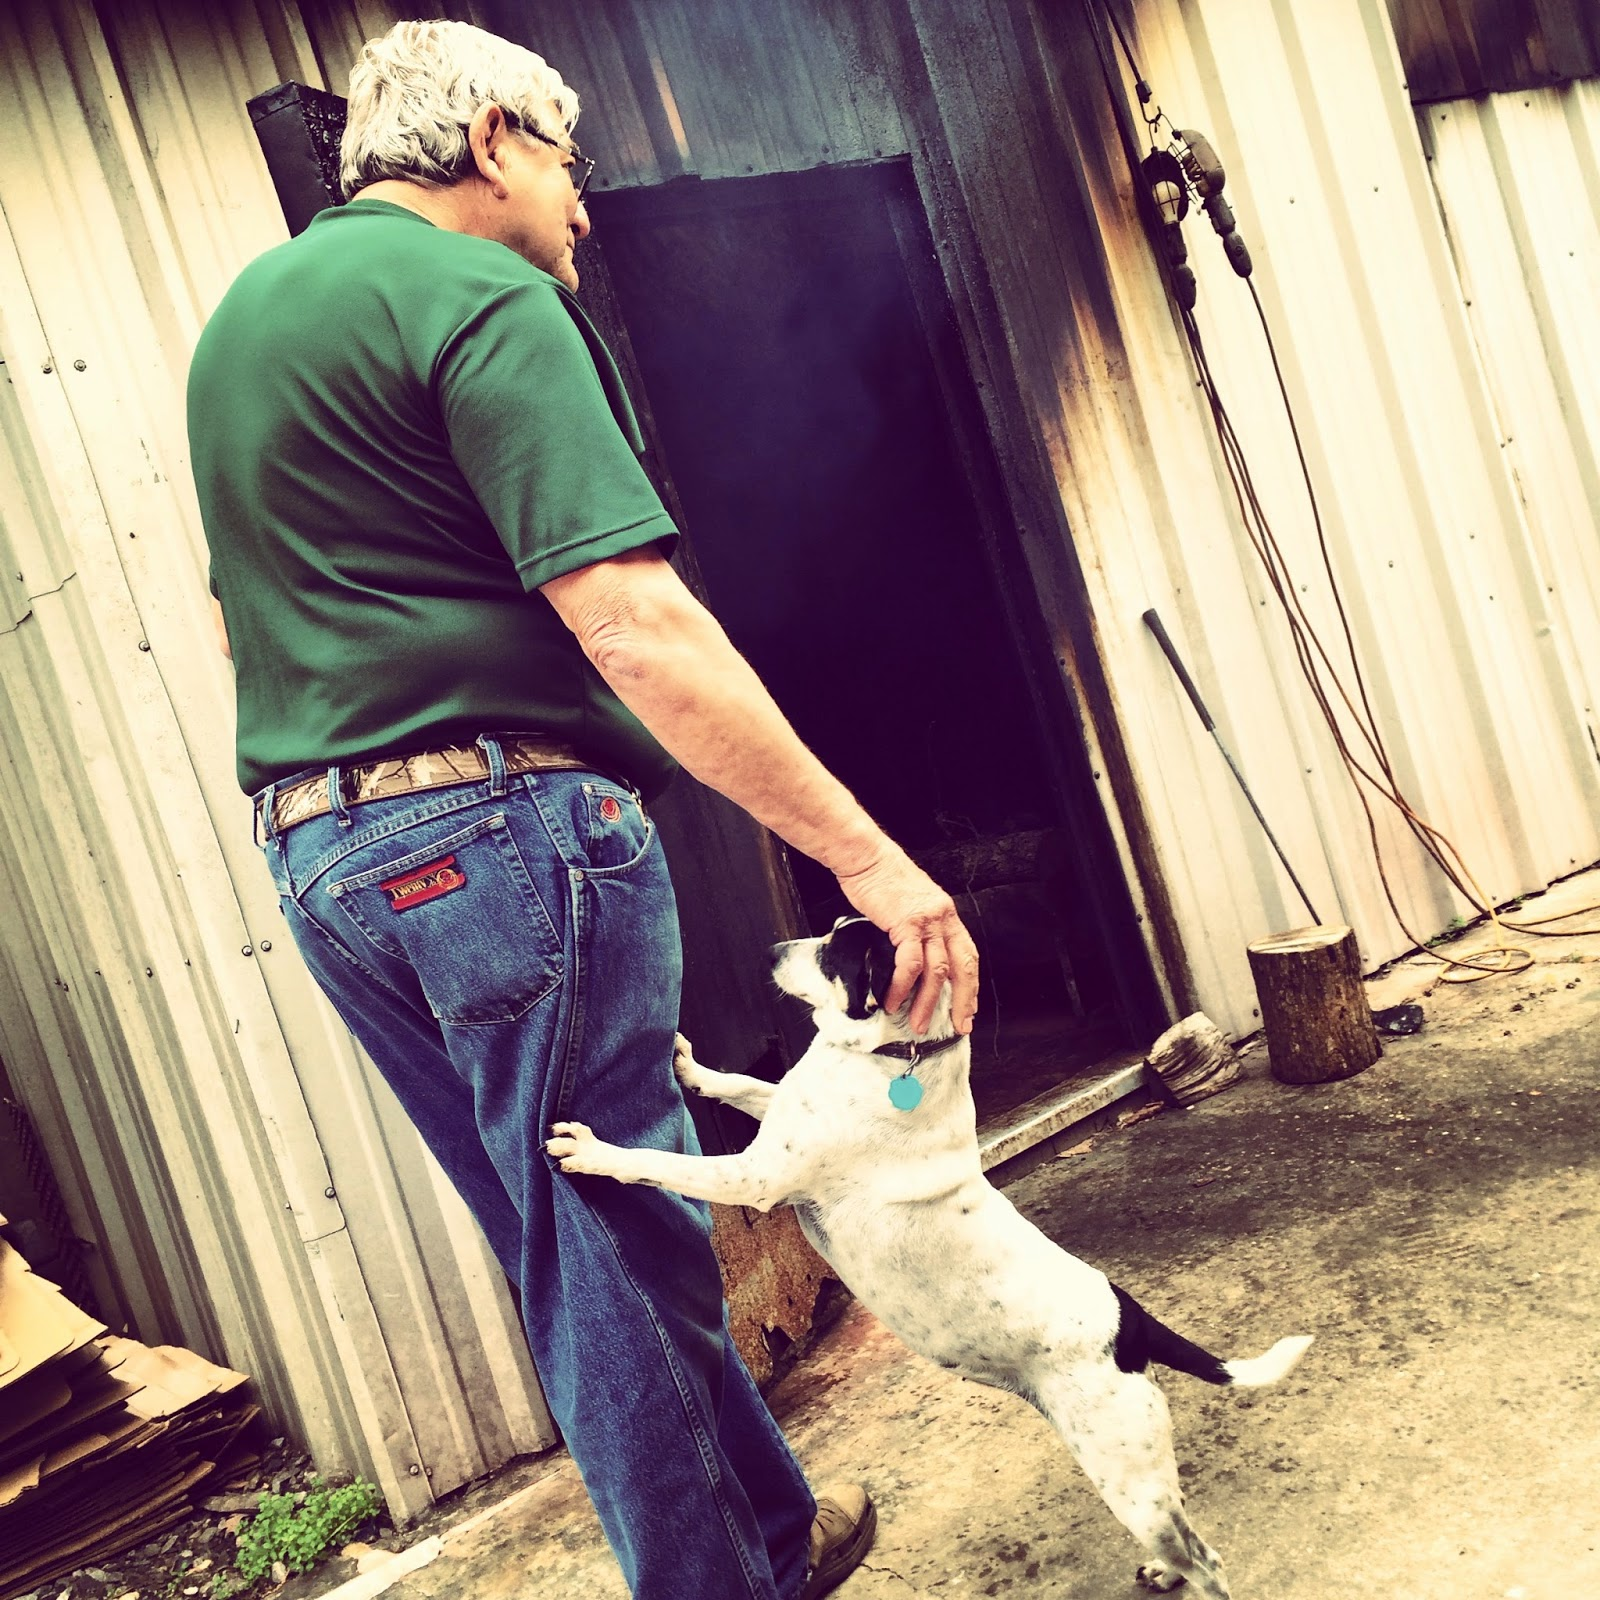 Kermit Lejeune and his faithful companion check the smokehouse at Lejeune's